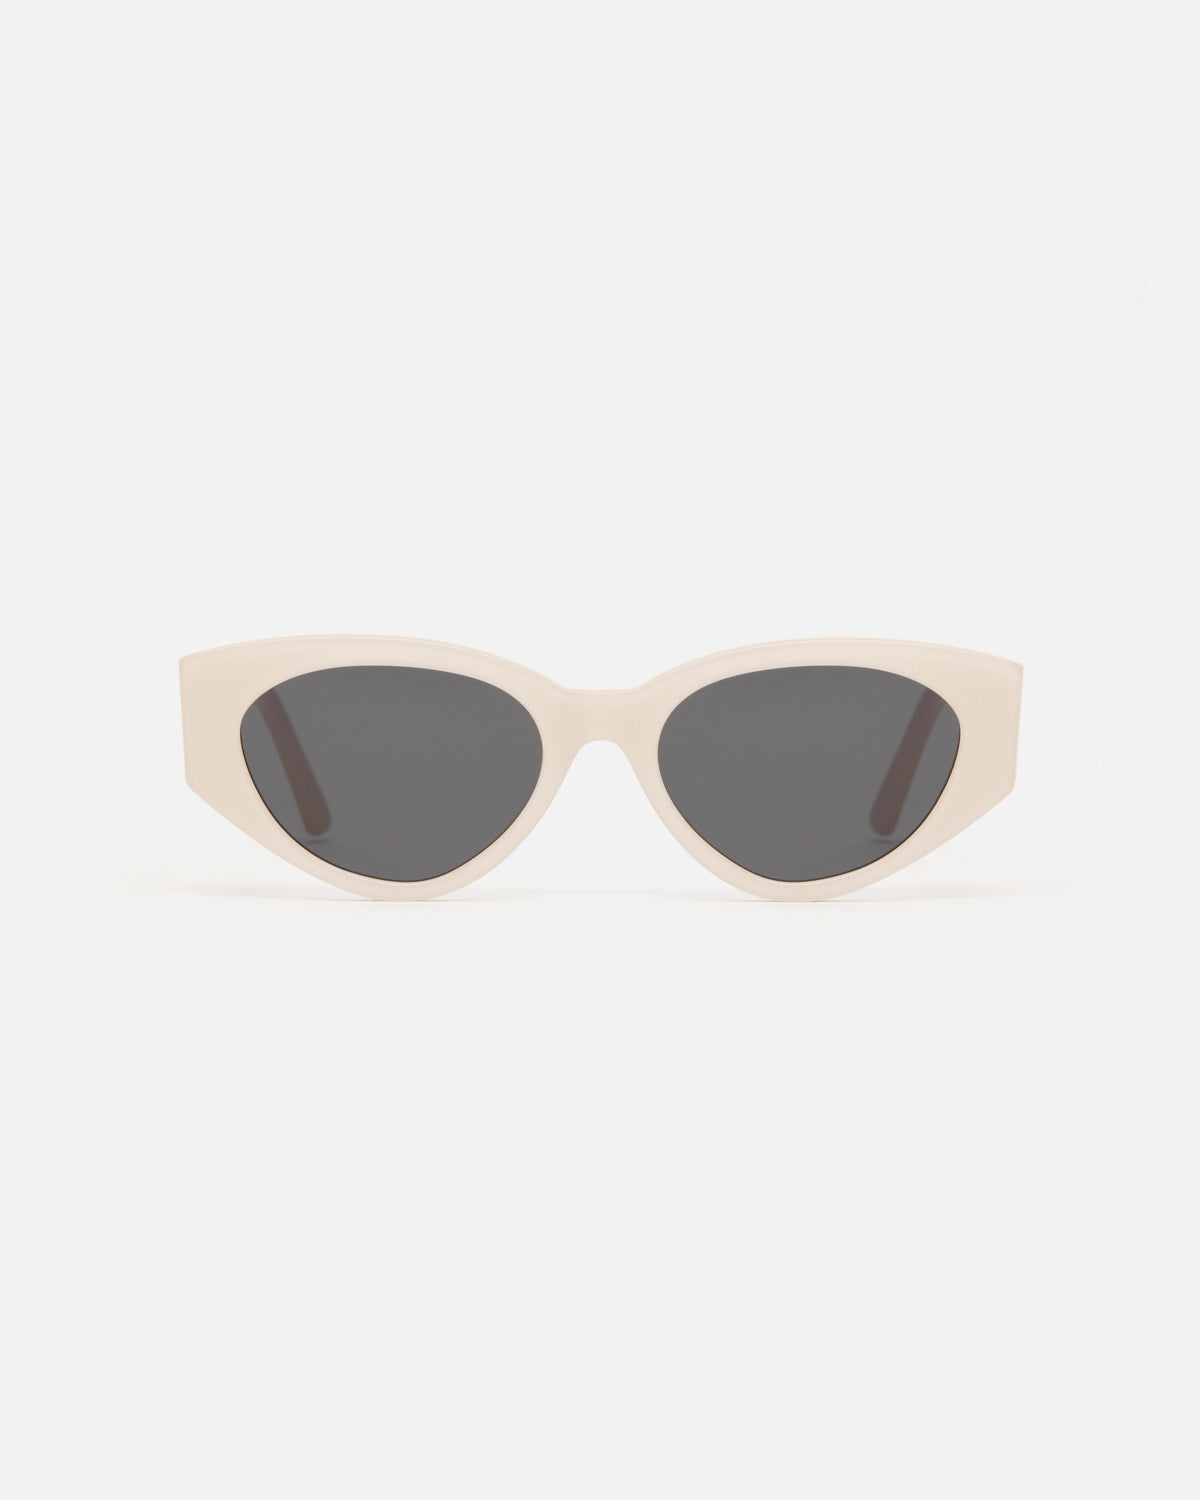 Lu Goldie Giselle oversize Sunglasses in white cream acetate with black lenses, front